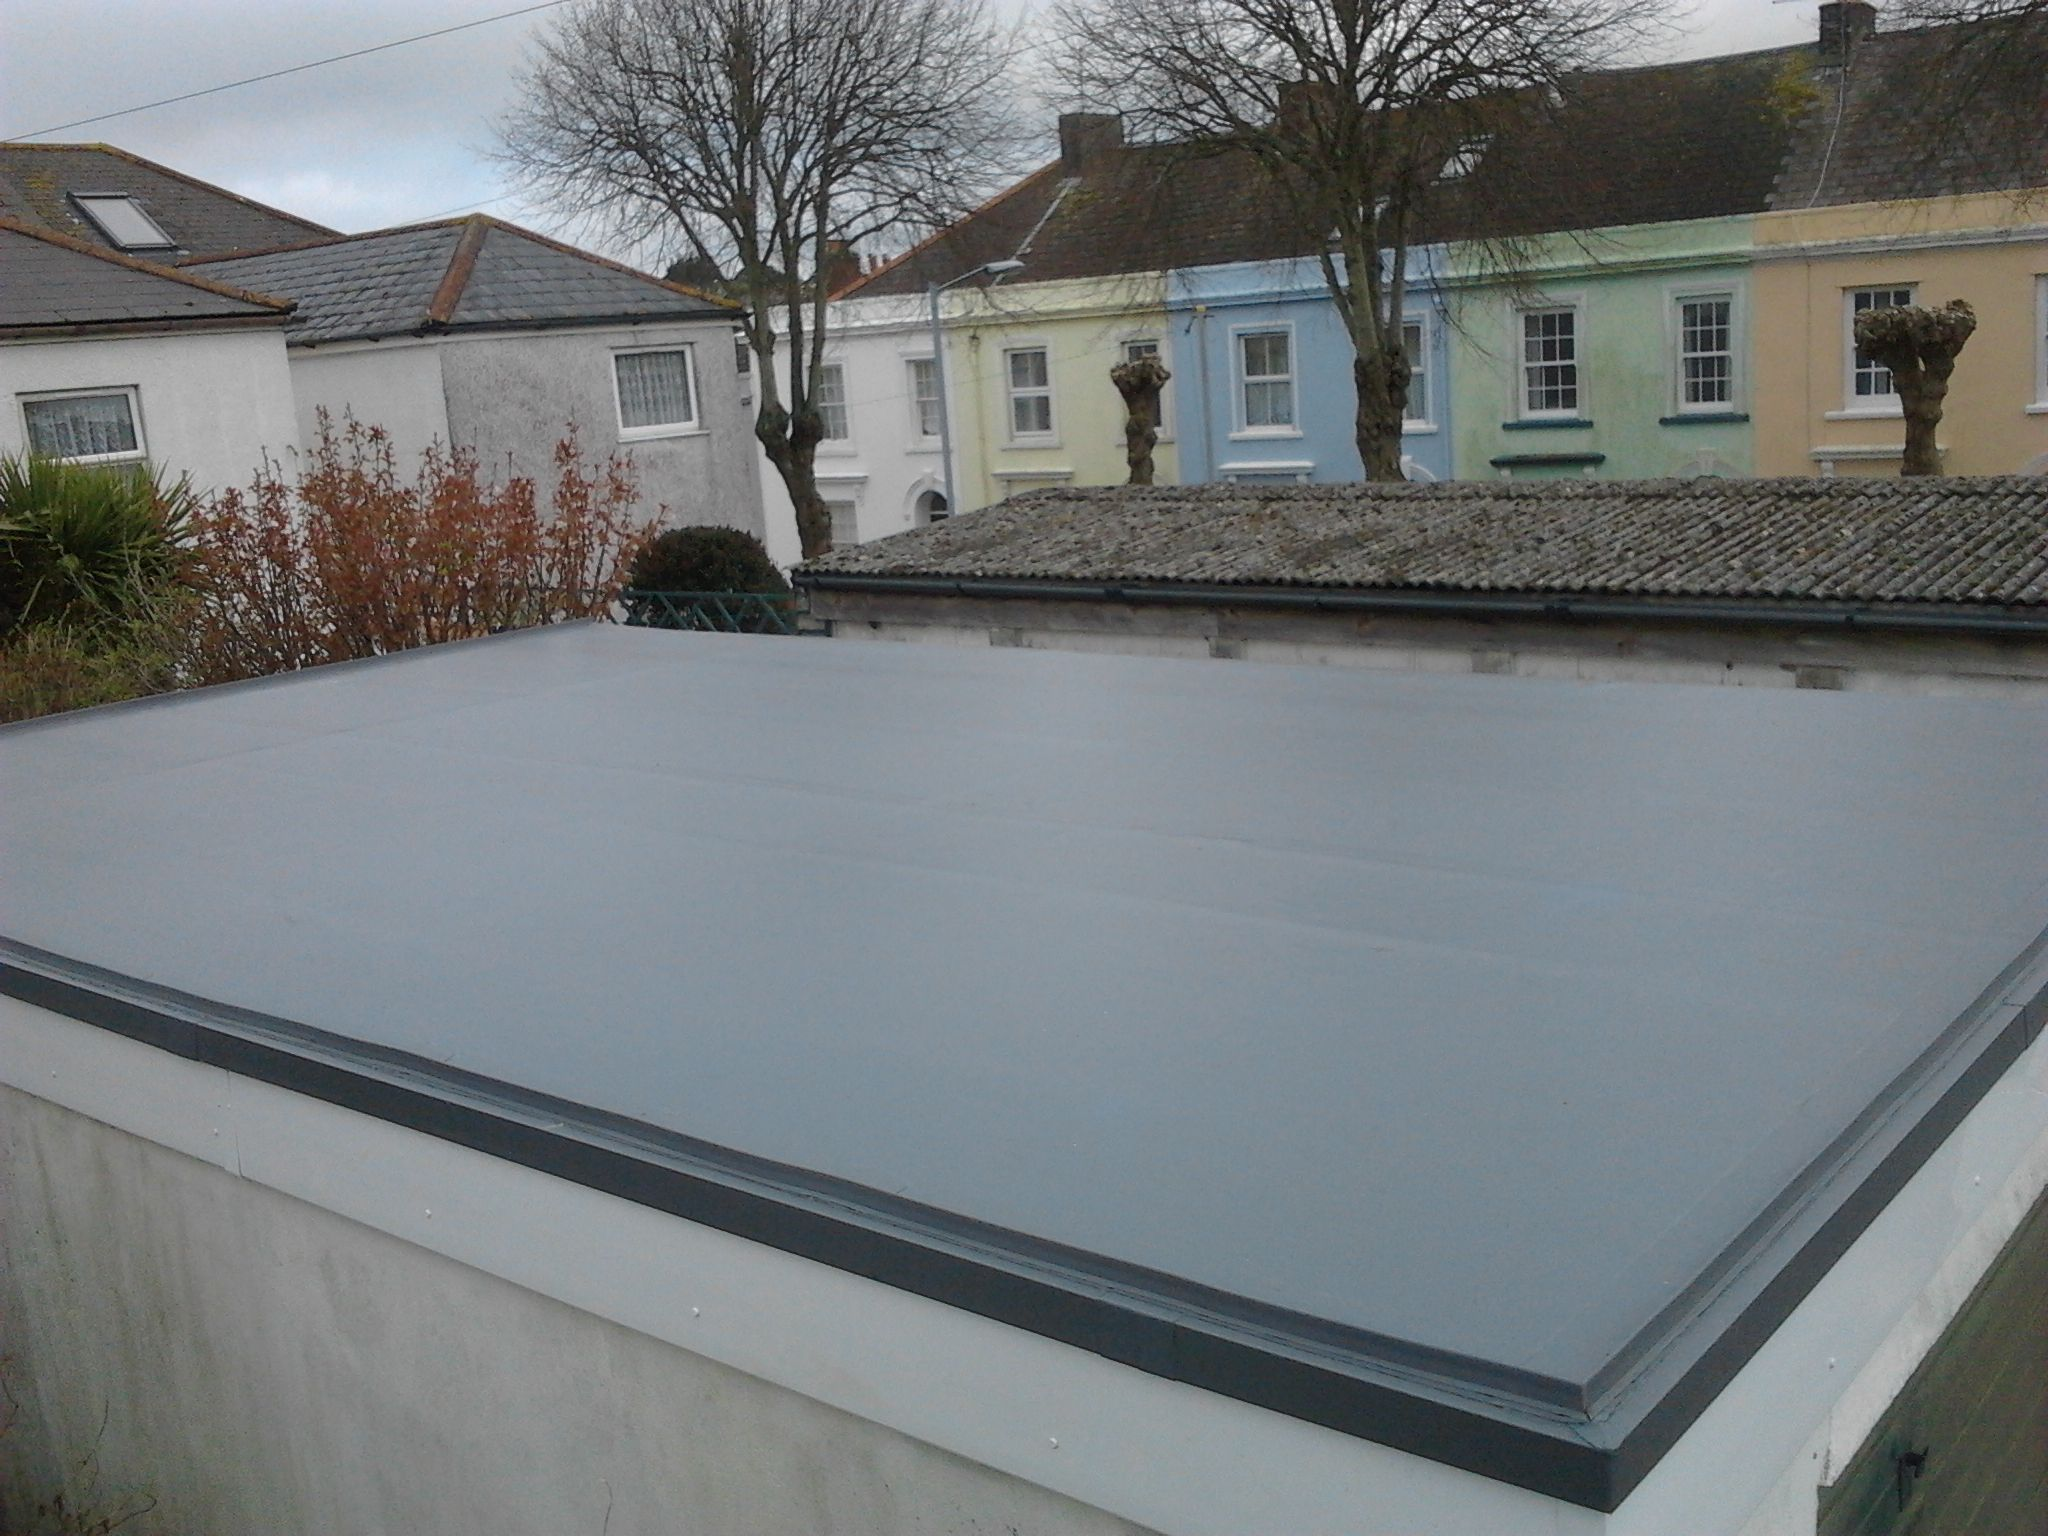 Single Ply Roofing Cornwall Pellow Flat Roofing Ltd Flat Roof Roofing Single Ply Roofing